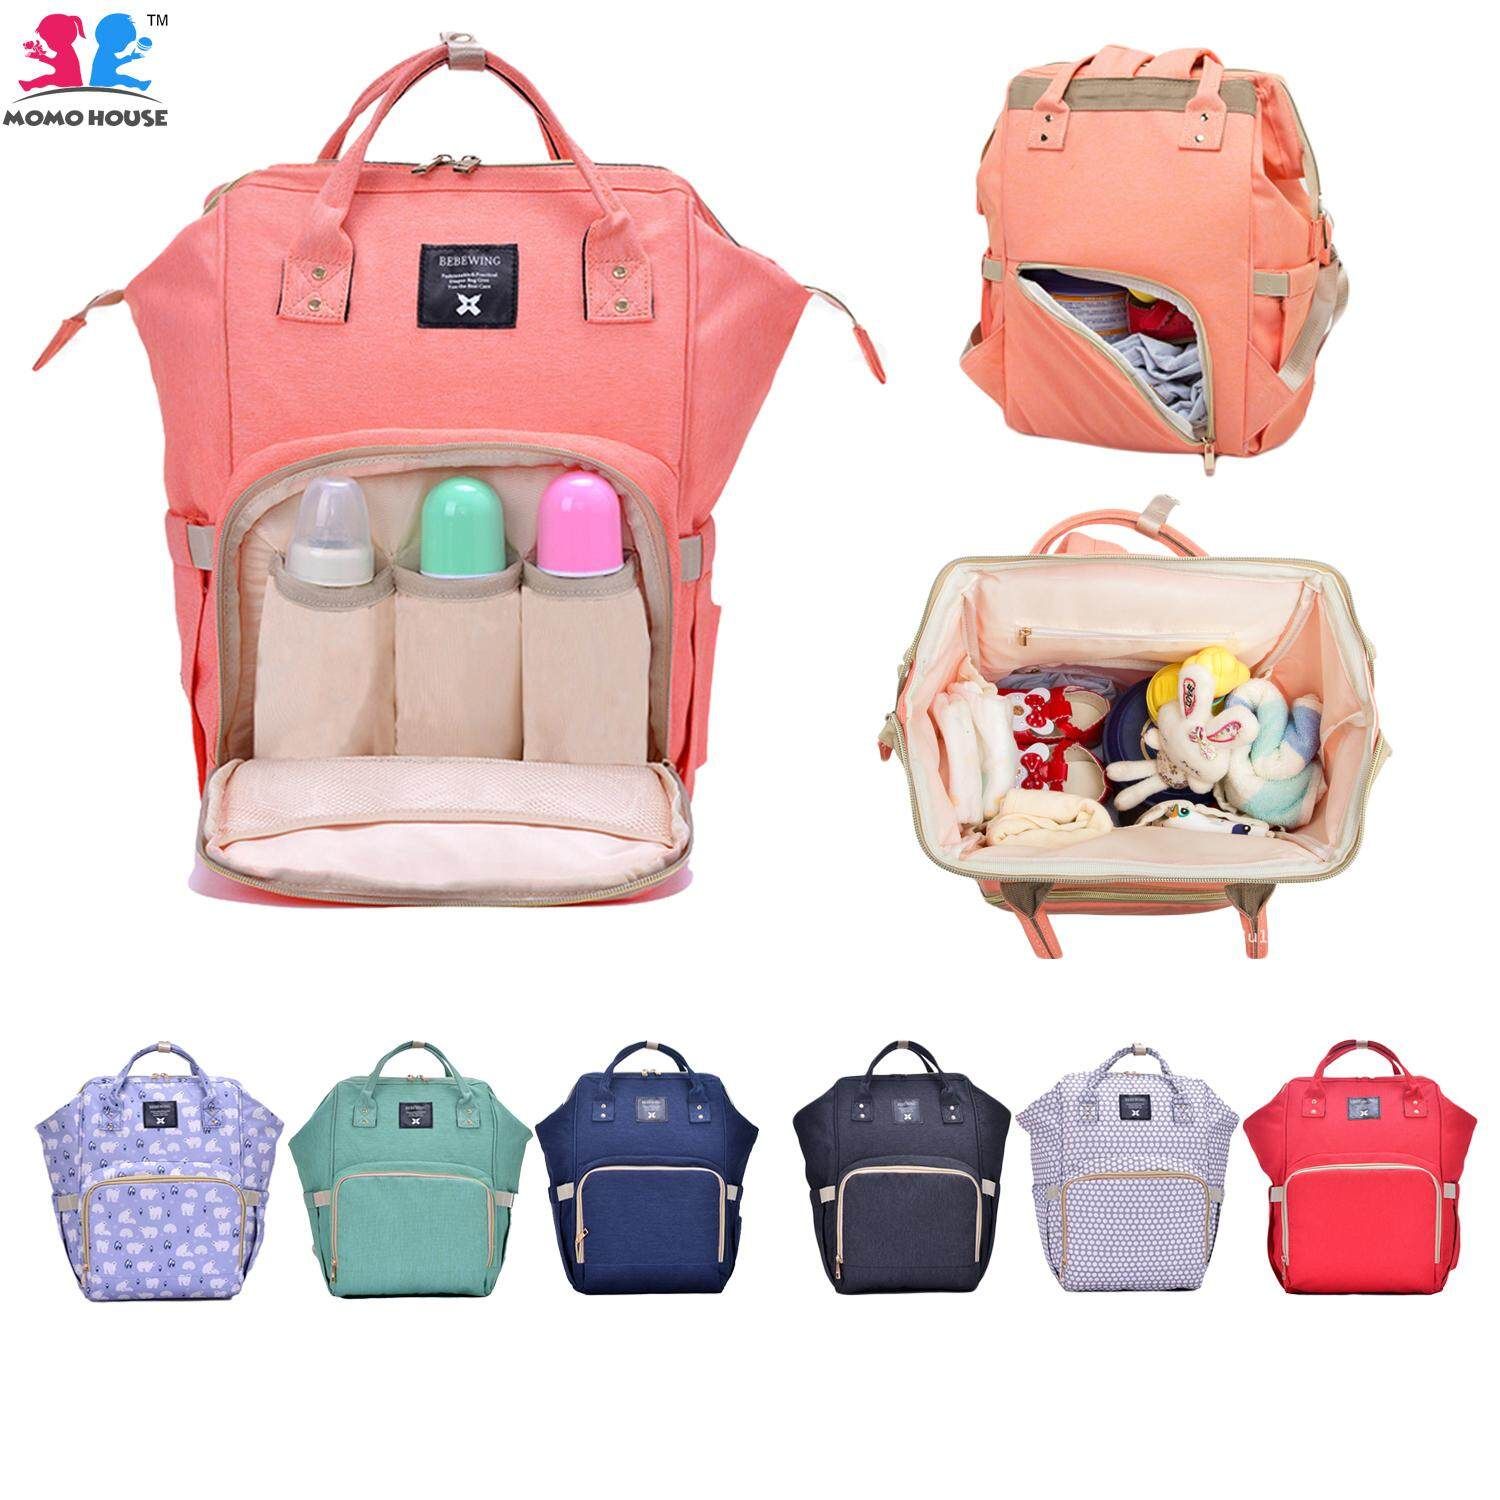 Diaper Bags For The Best Price In Malaysia Babygo Inc Travelling Pouch Organiser Baby Nappy Backpack Maternity Large Capacity Bag